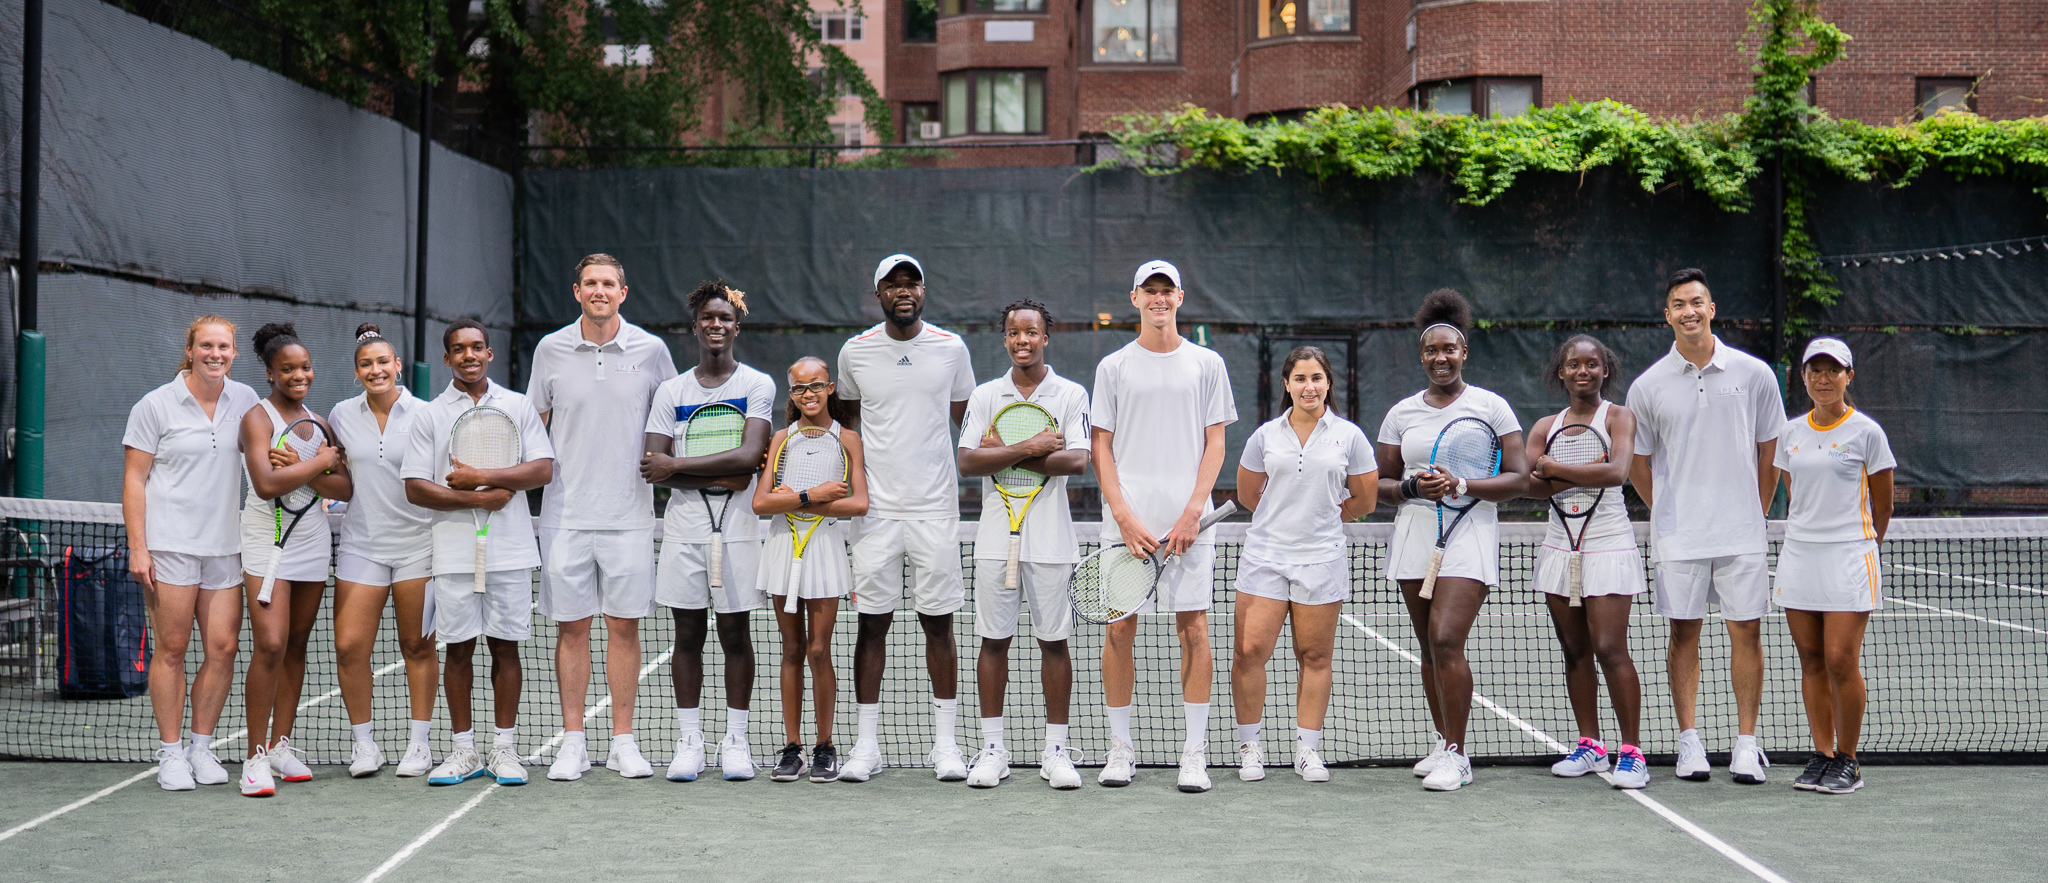 Group of tennis players smiling for a photo on the field